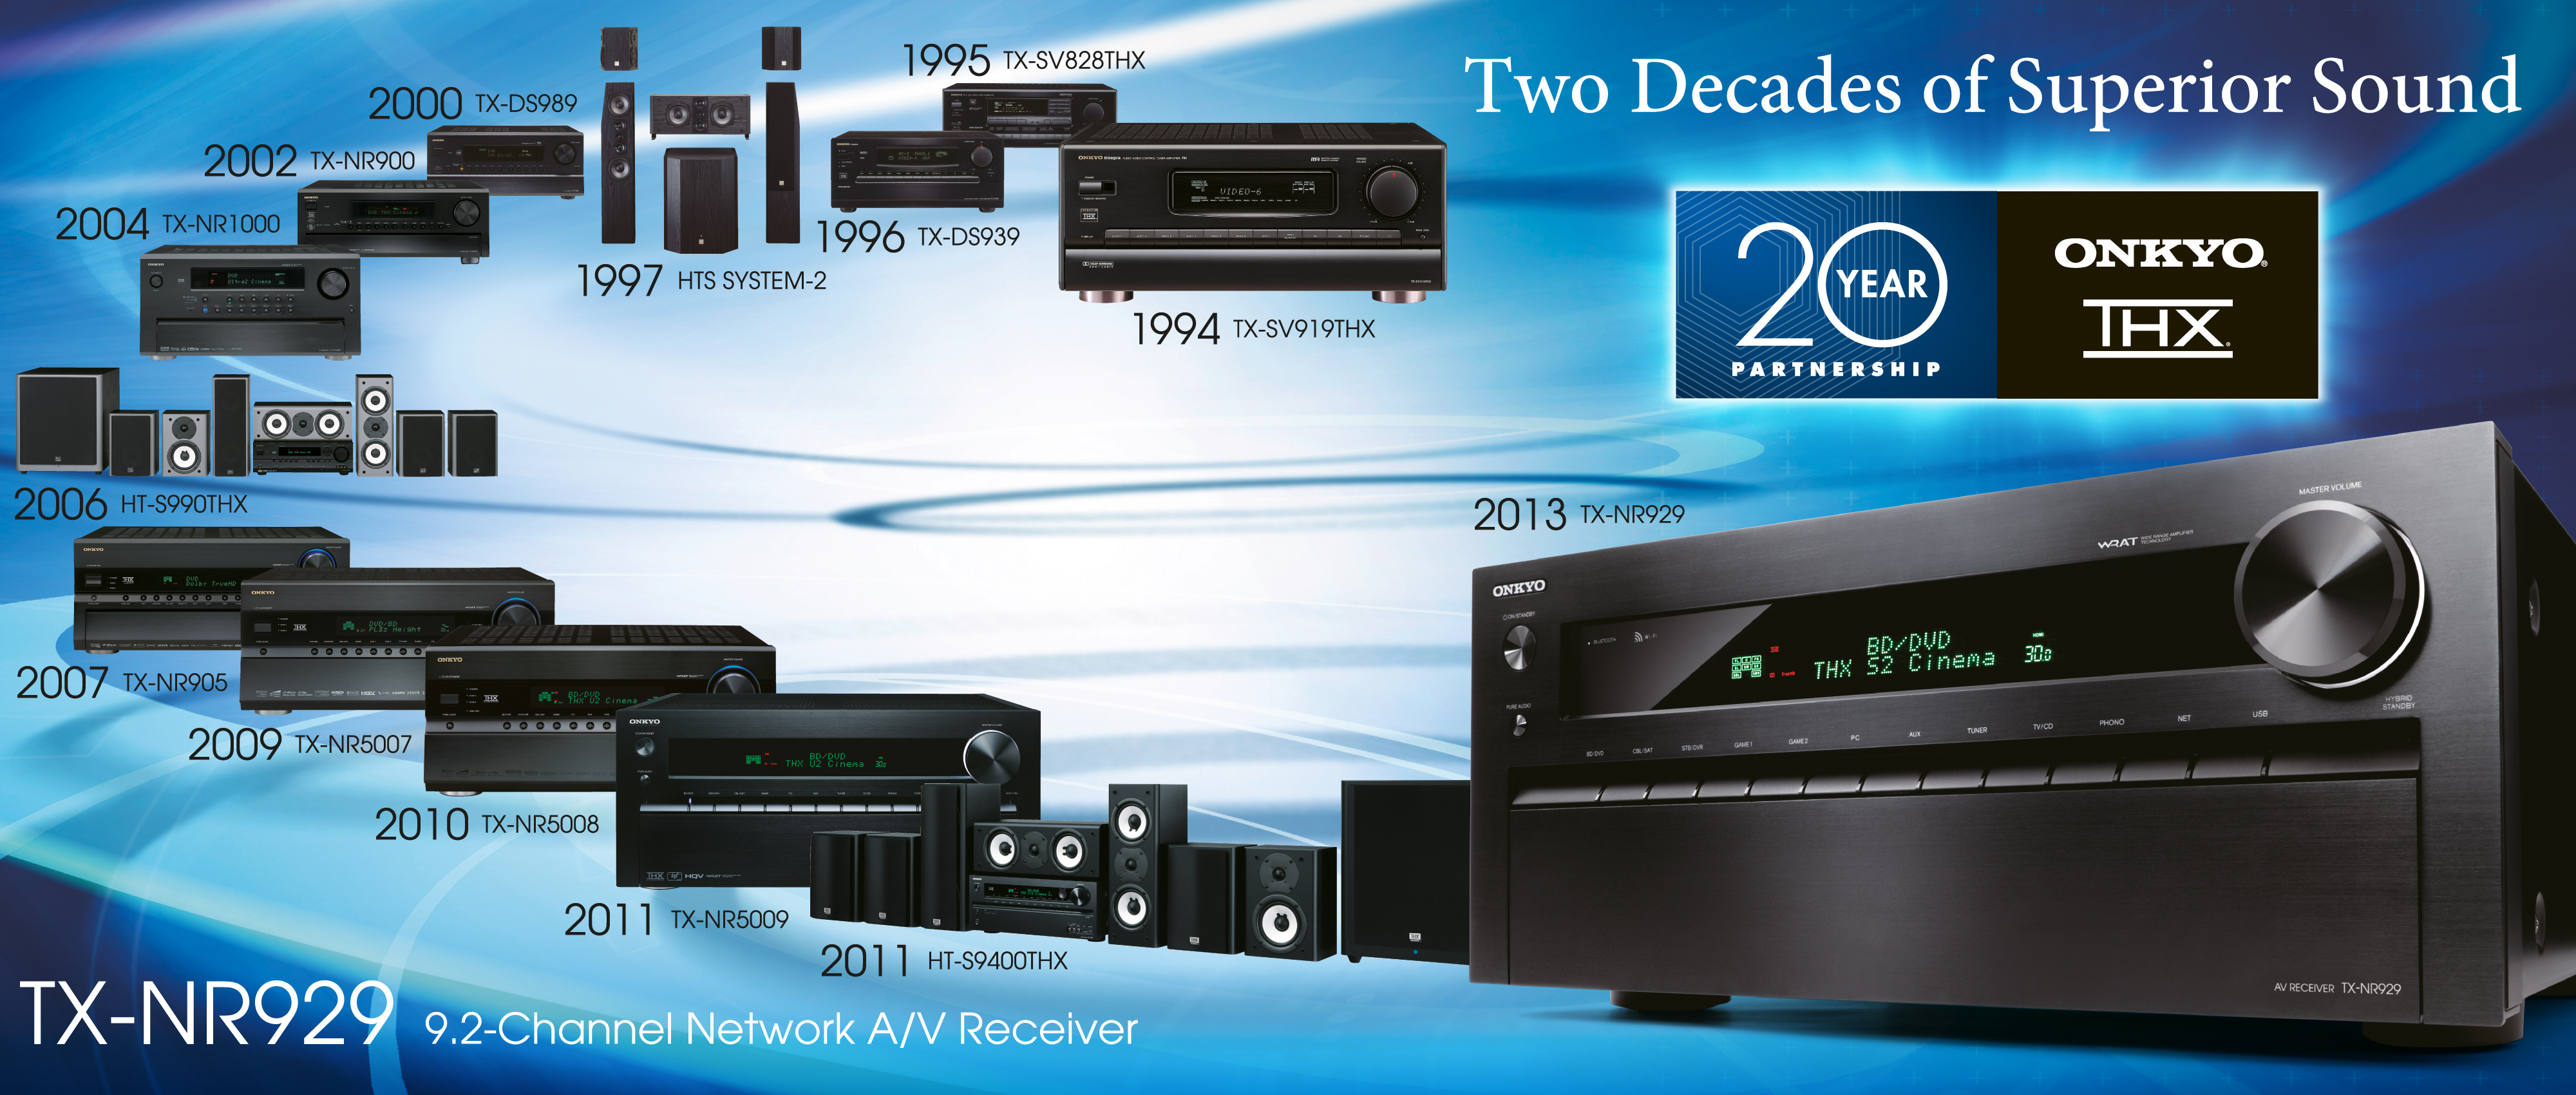 ONKYO, THX & the TX-NR929 | Product Support Blog